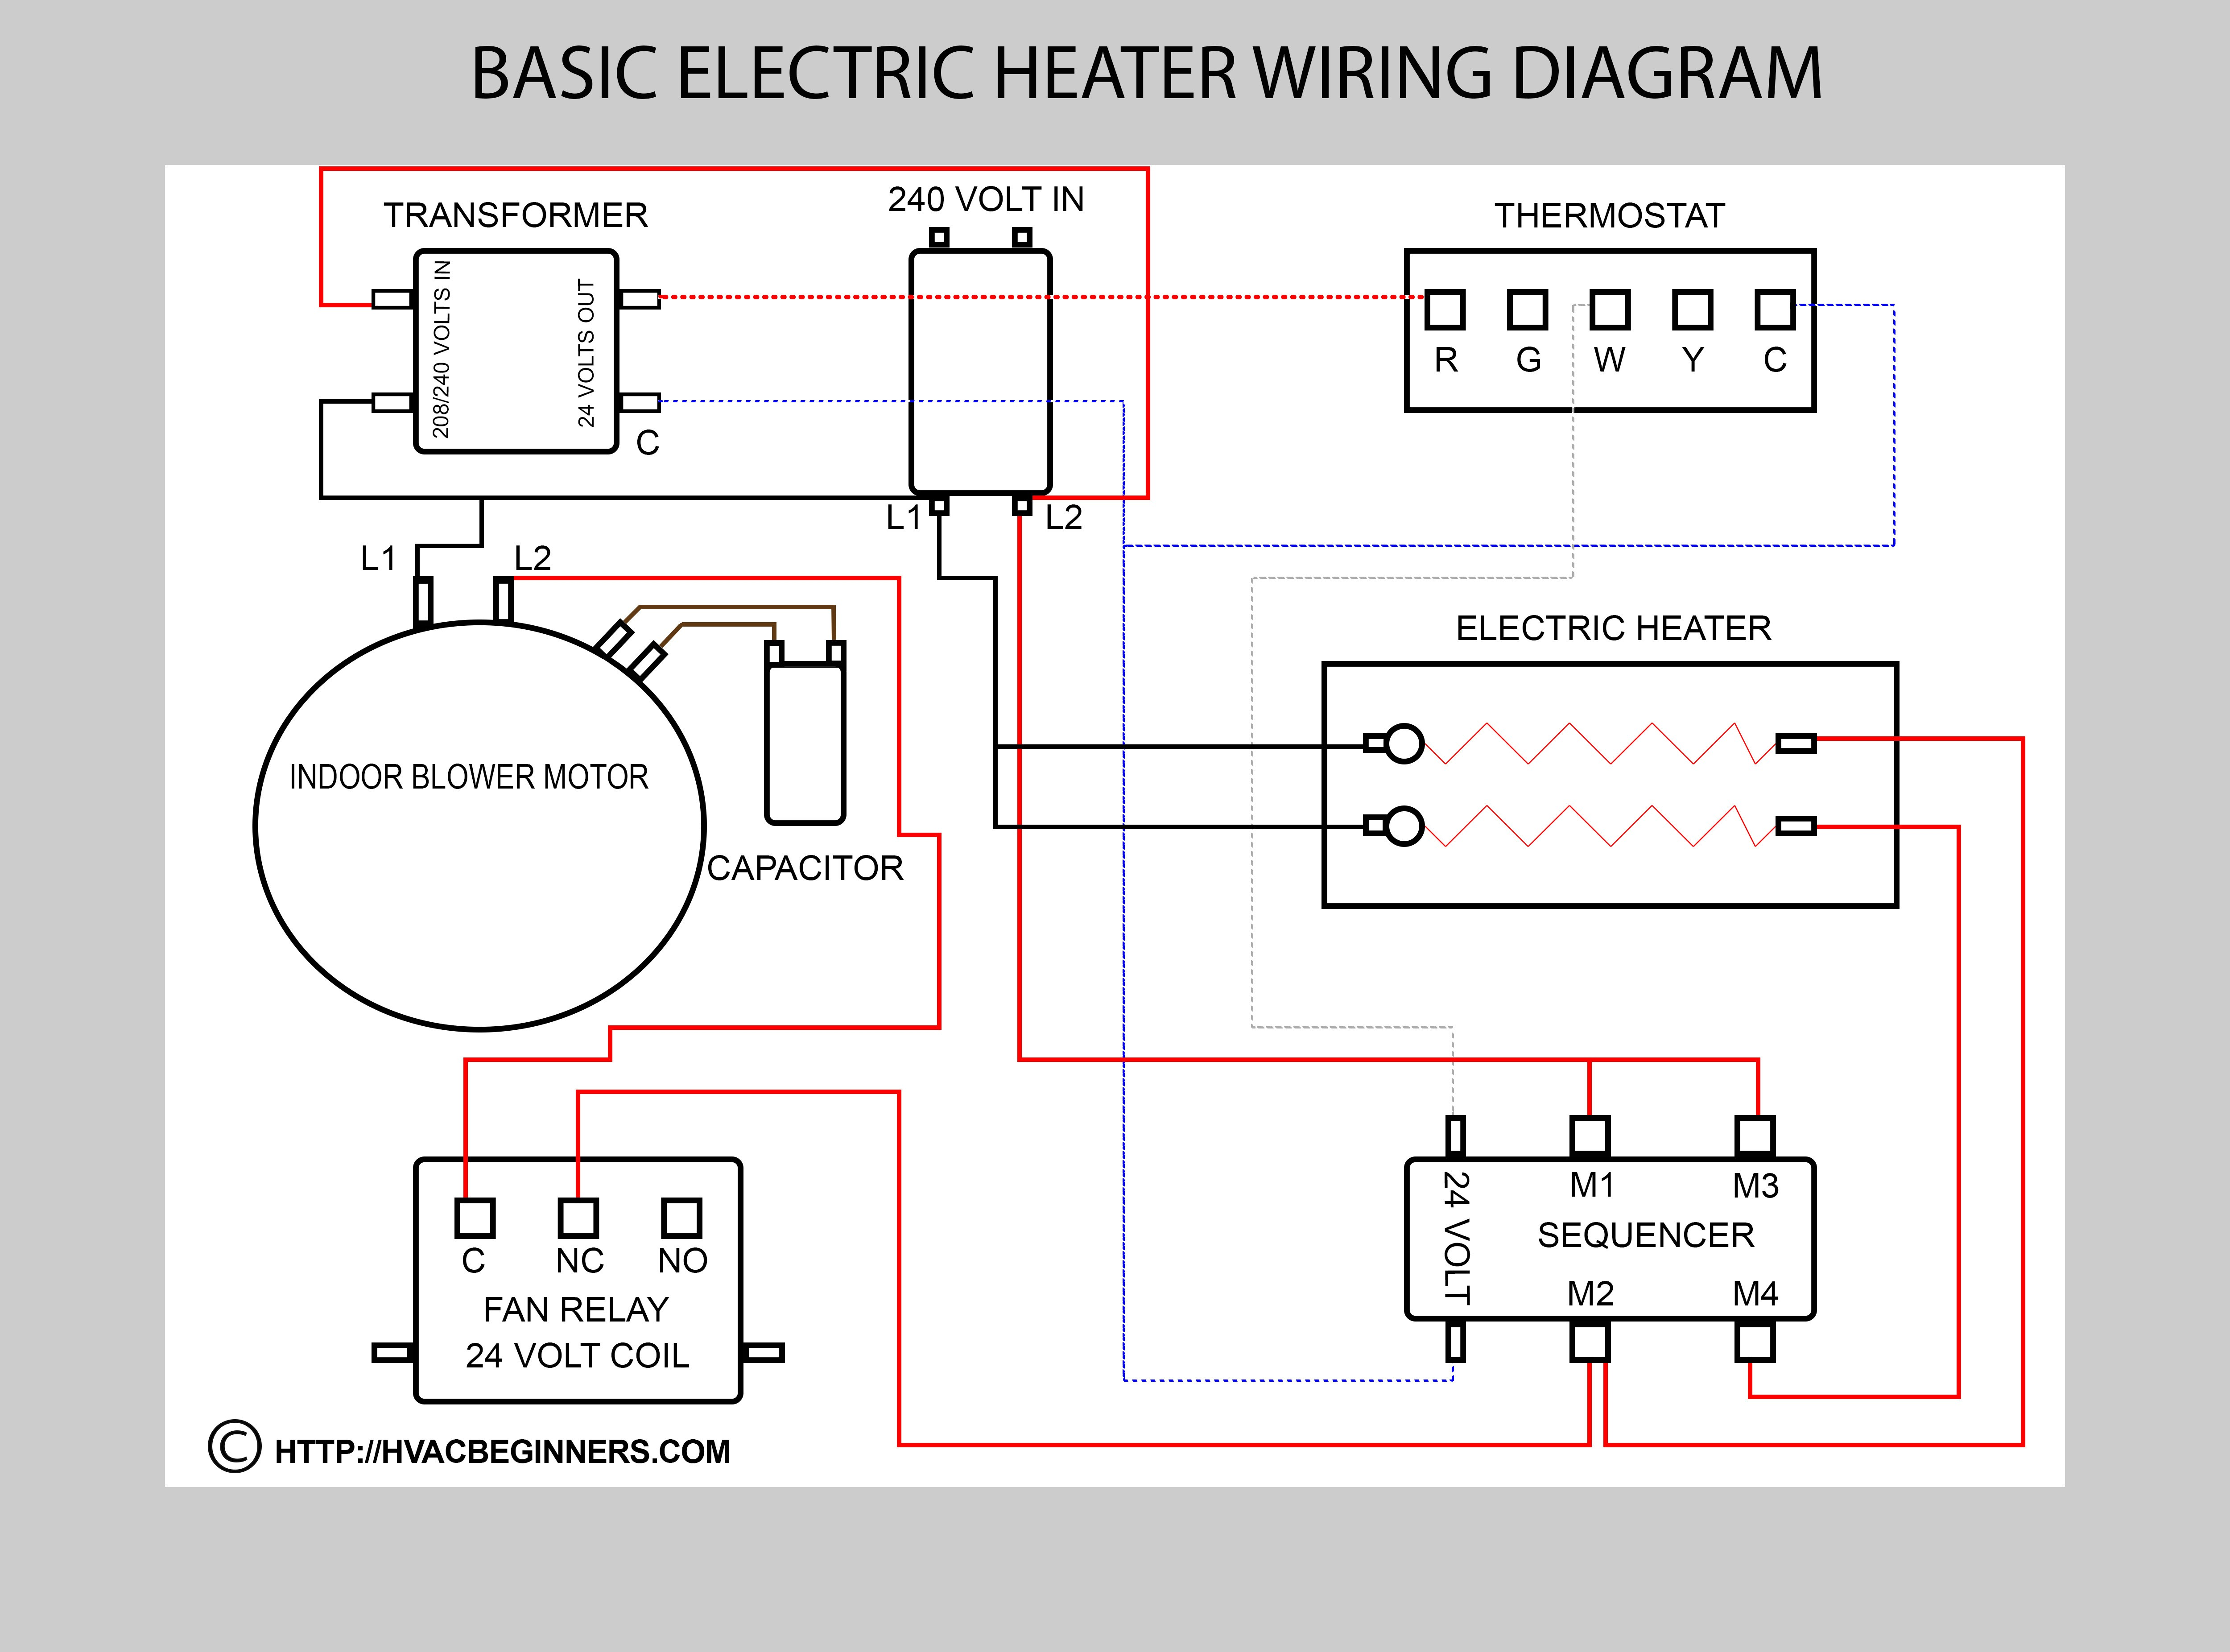 Wiring Diagram Electric Furnace Wire Muffle 5 Thermostat Cool Diagrams